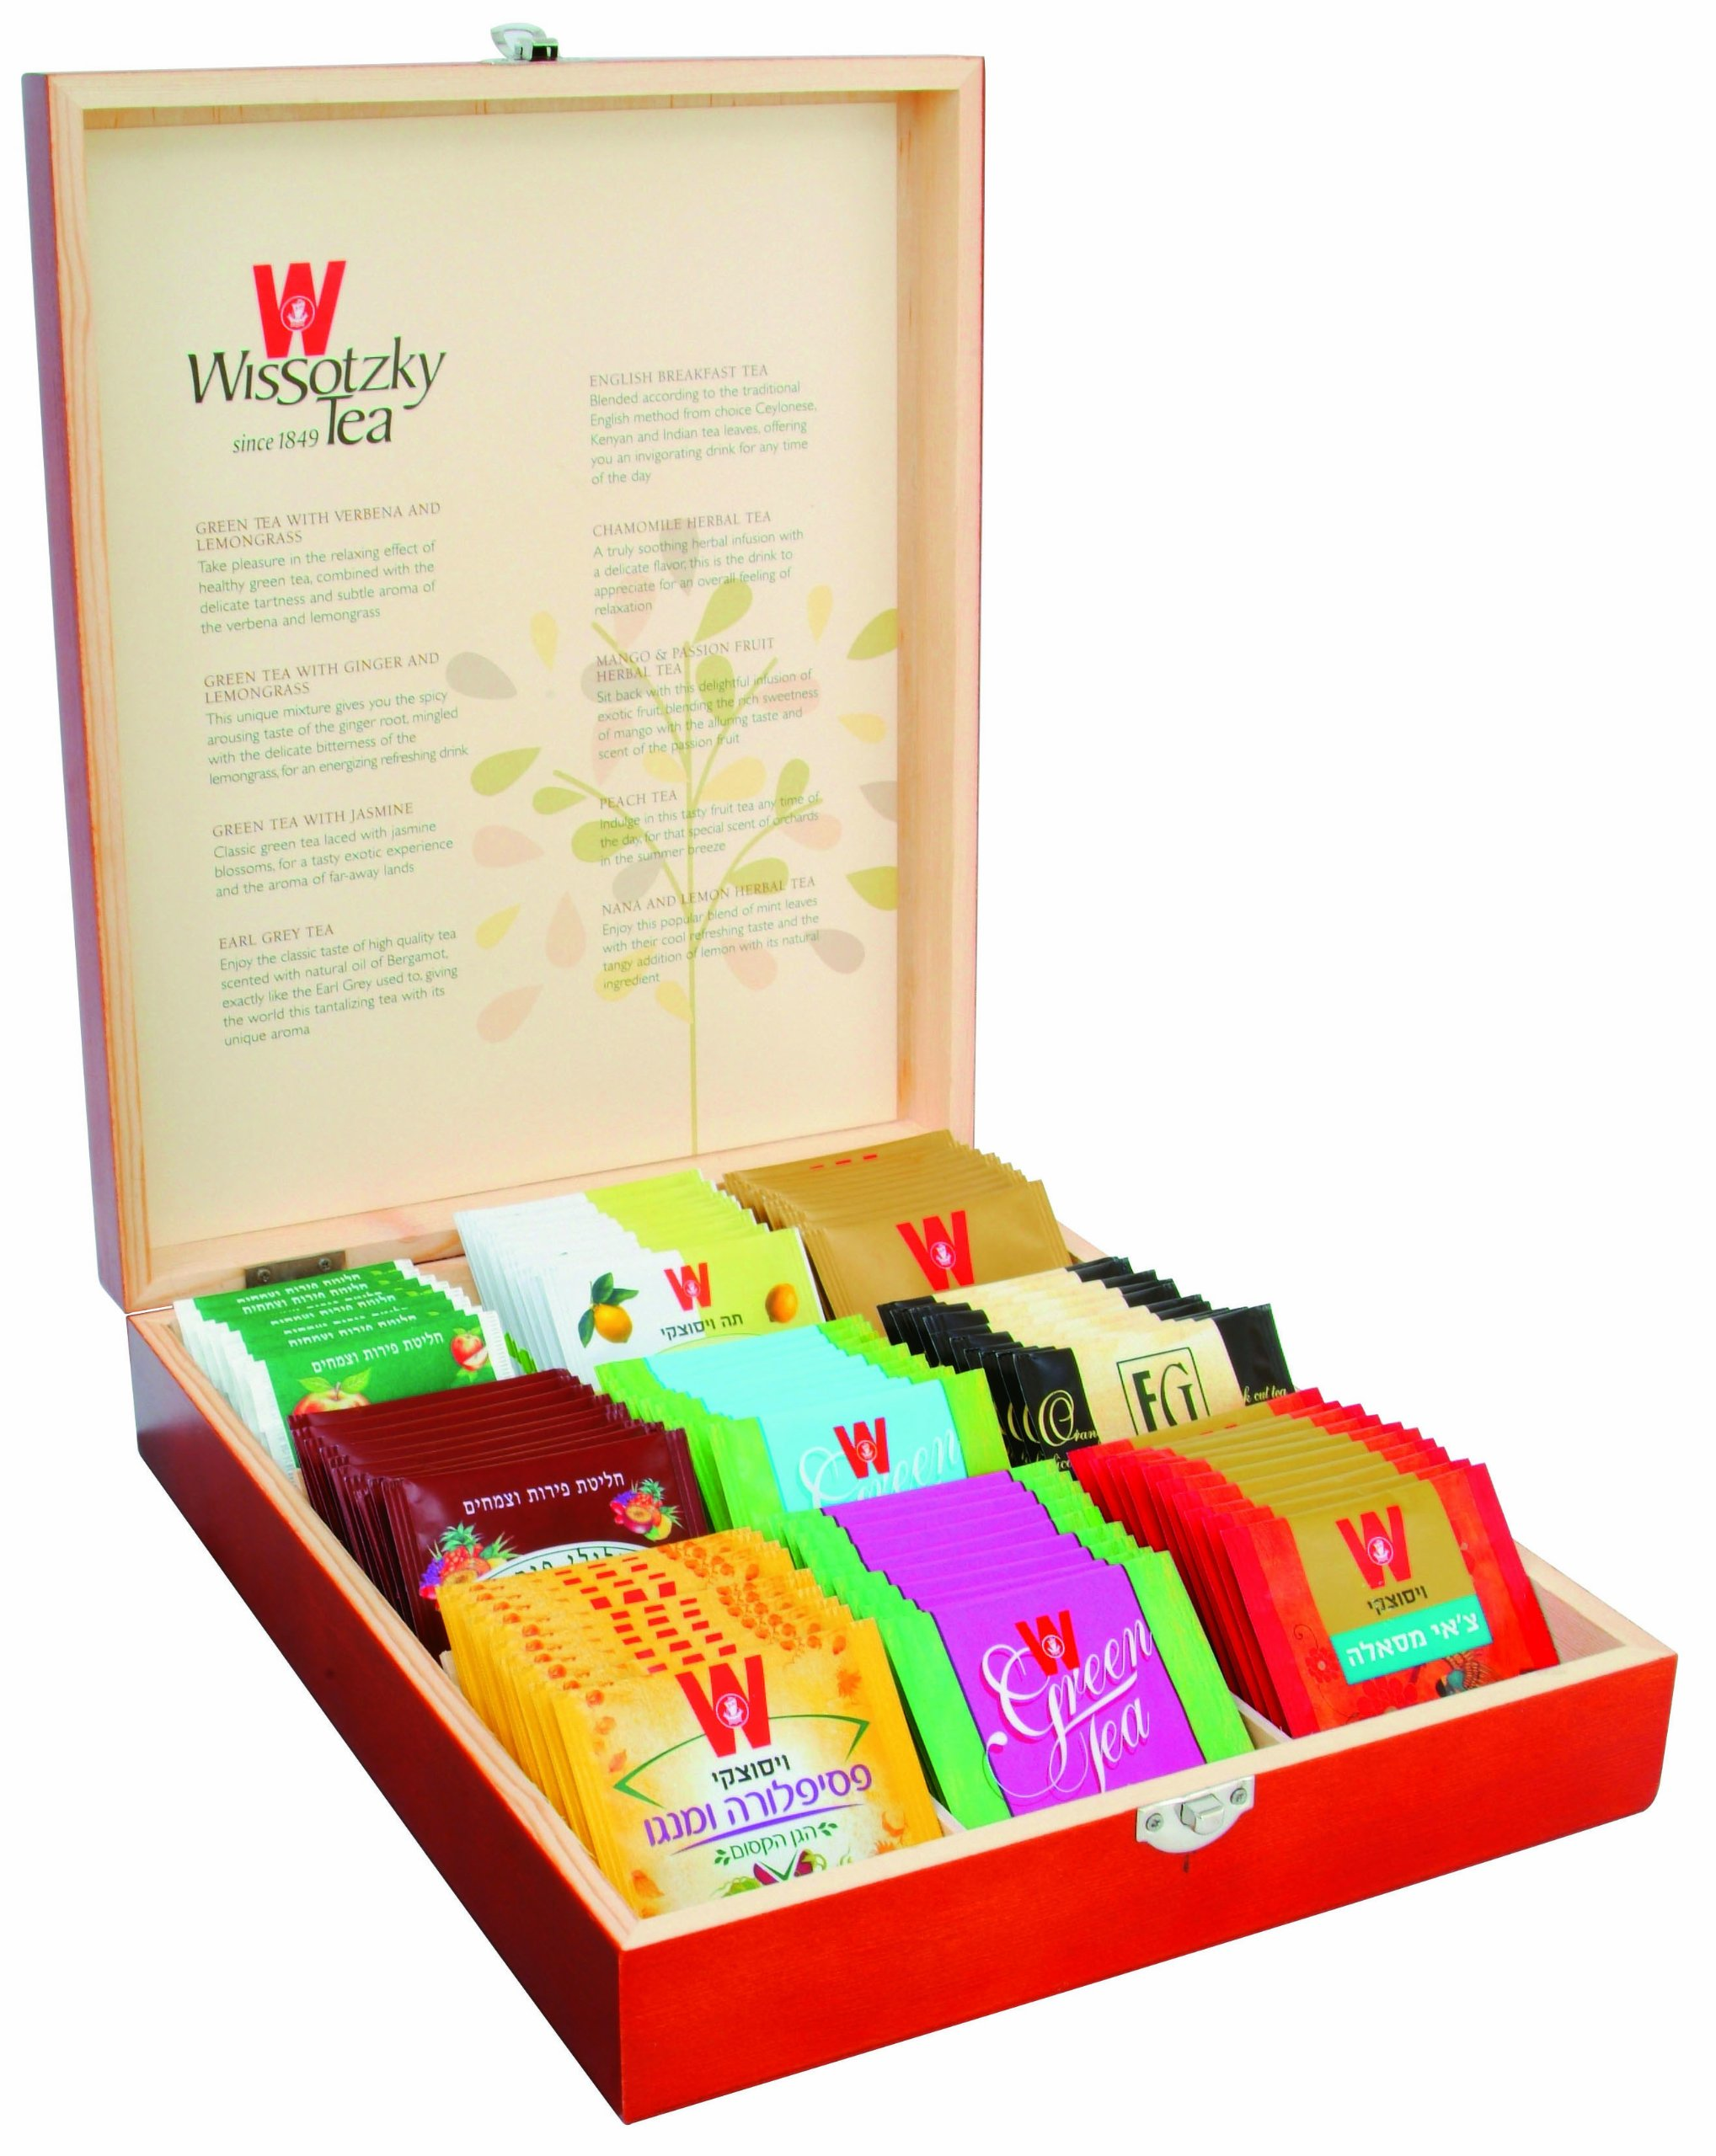 WISSOTZKY Mahogany Tea Chest (9 Flavors), 5.45-Ounce Boxes by Wissotzky Tea